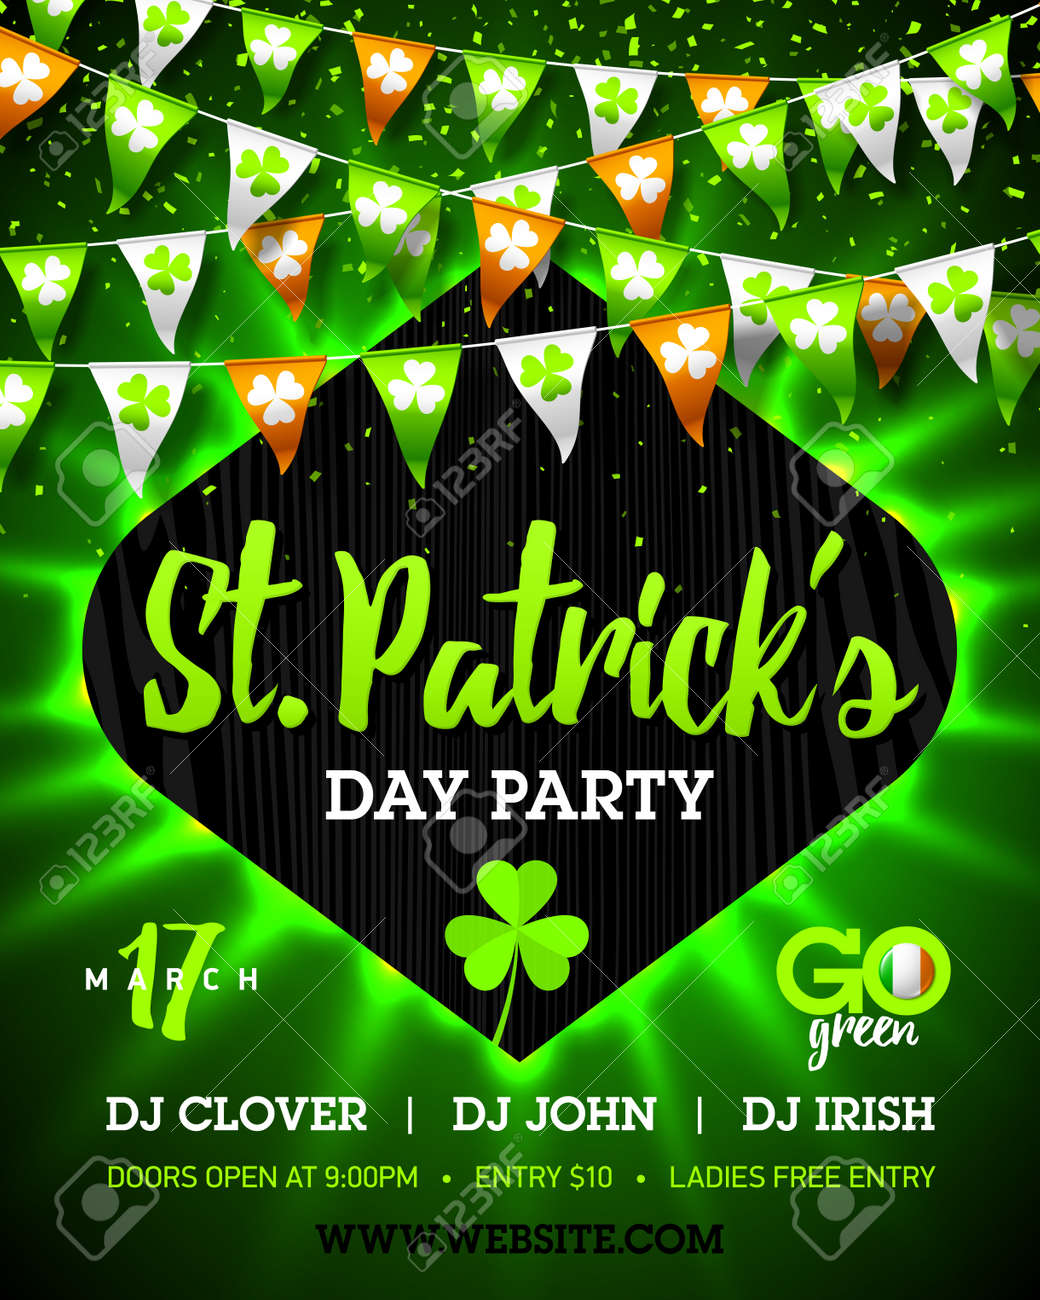 17 march saint patricks day party bright invitation poster design 17 march saint patricks day party bright invitation poster design imagens 72960829 stopboris Gallery